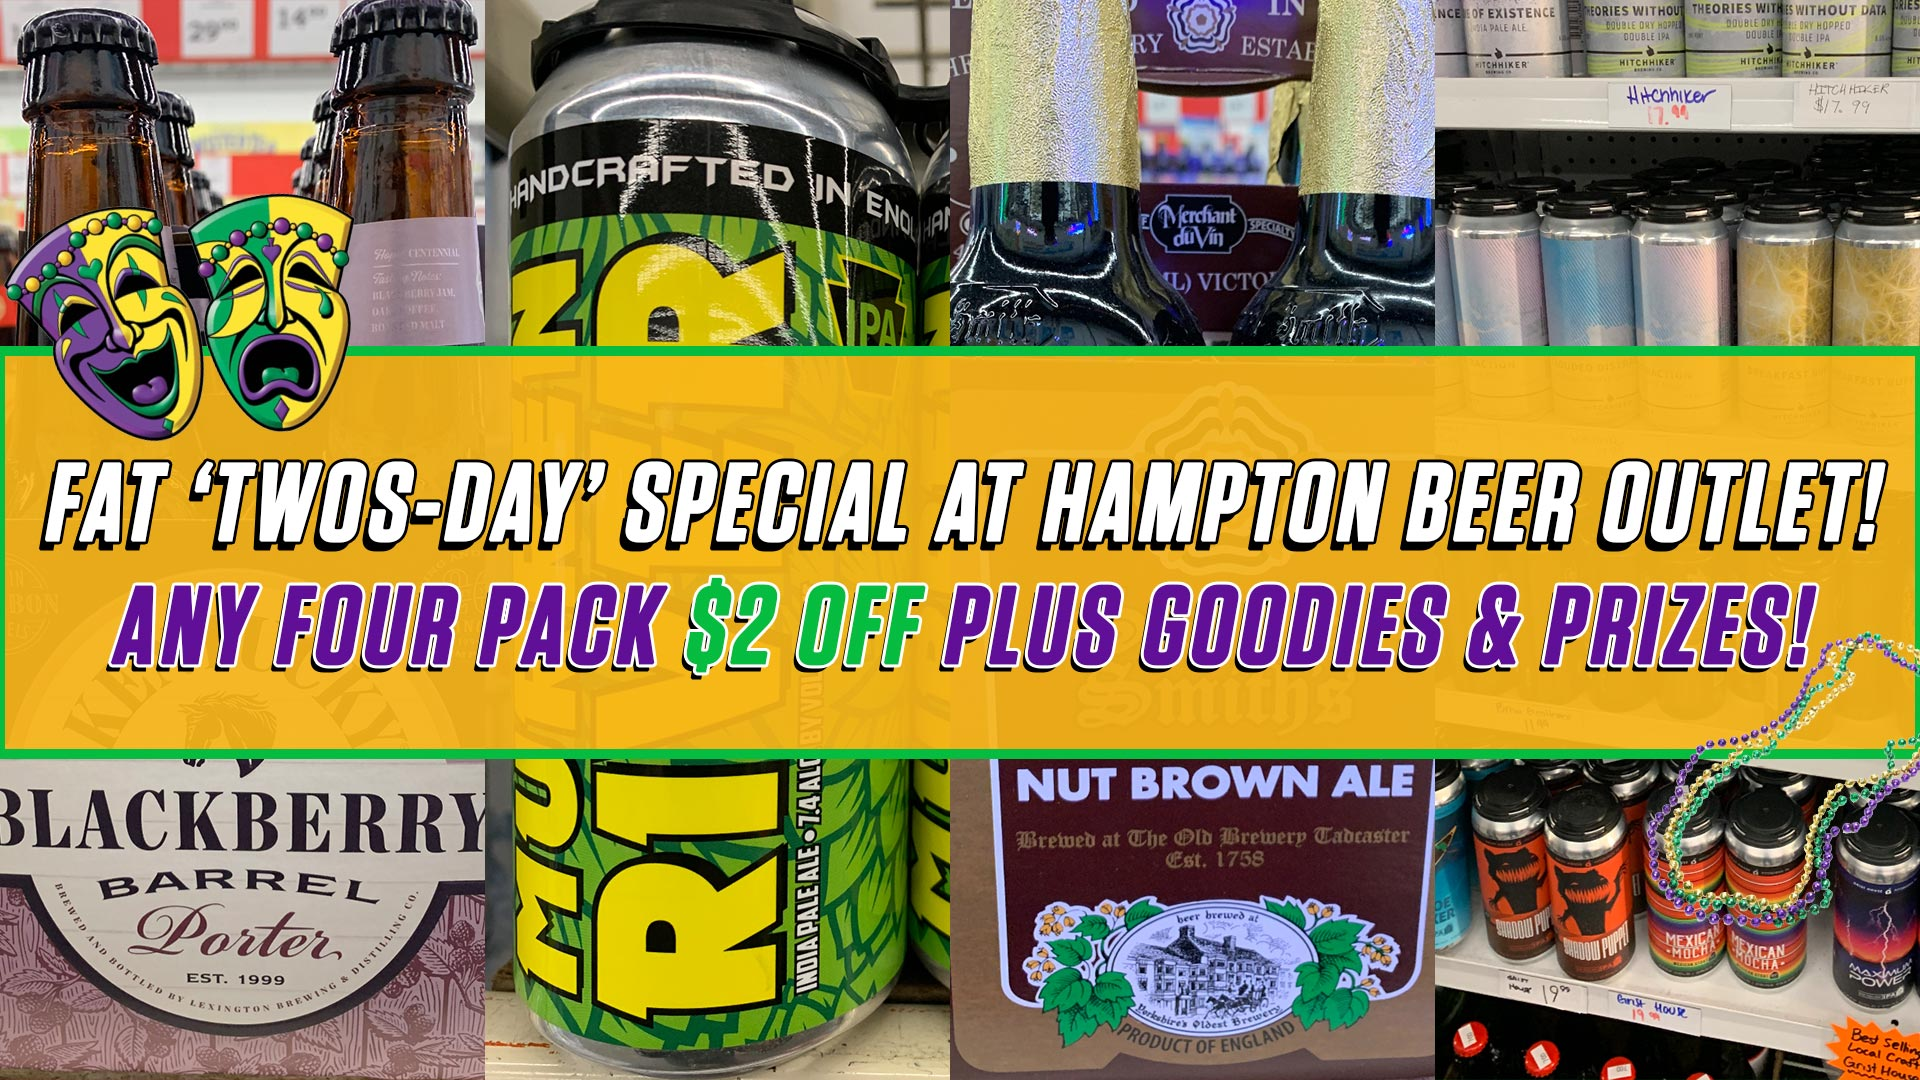 Fat 'Twos-day' Sale at Hampton Beer Outlet